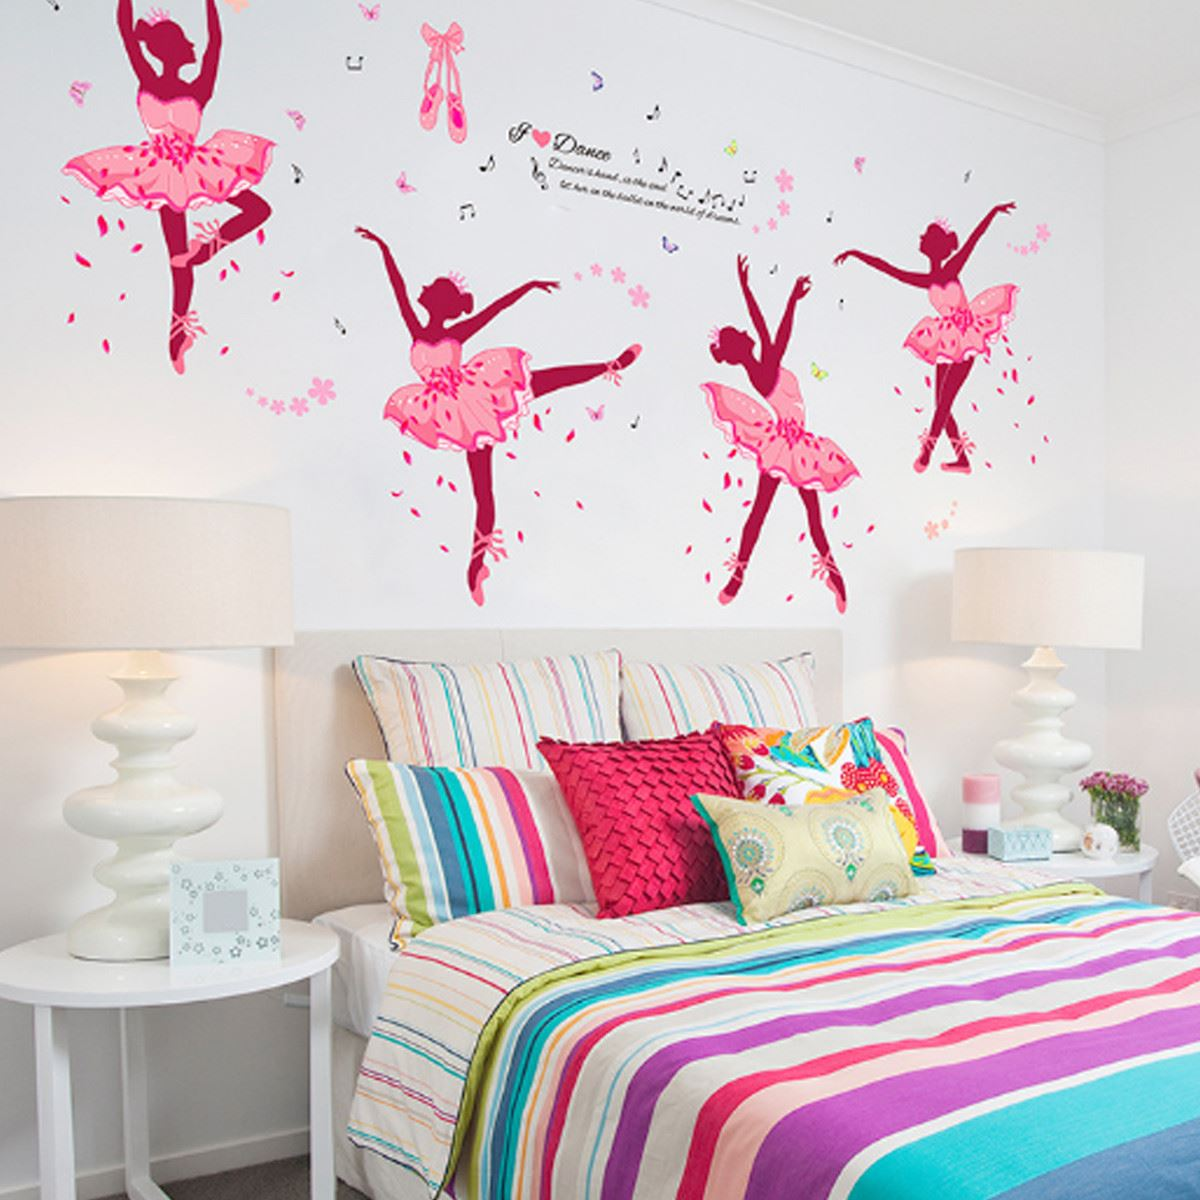 ballet girls arte pegatinas de pared decoracin de diy para los nios decoracin pared de